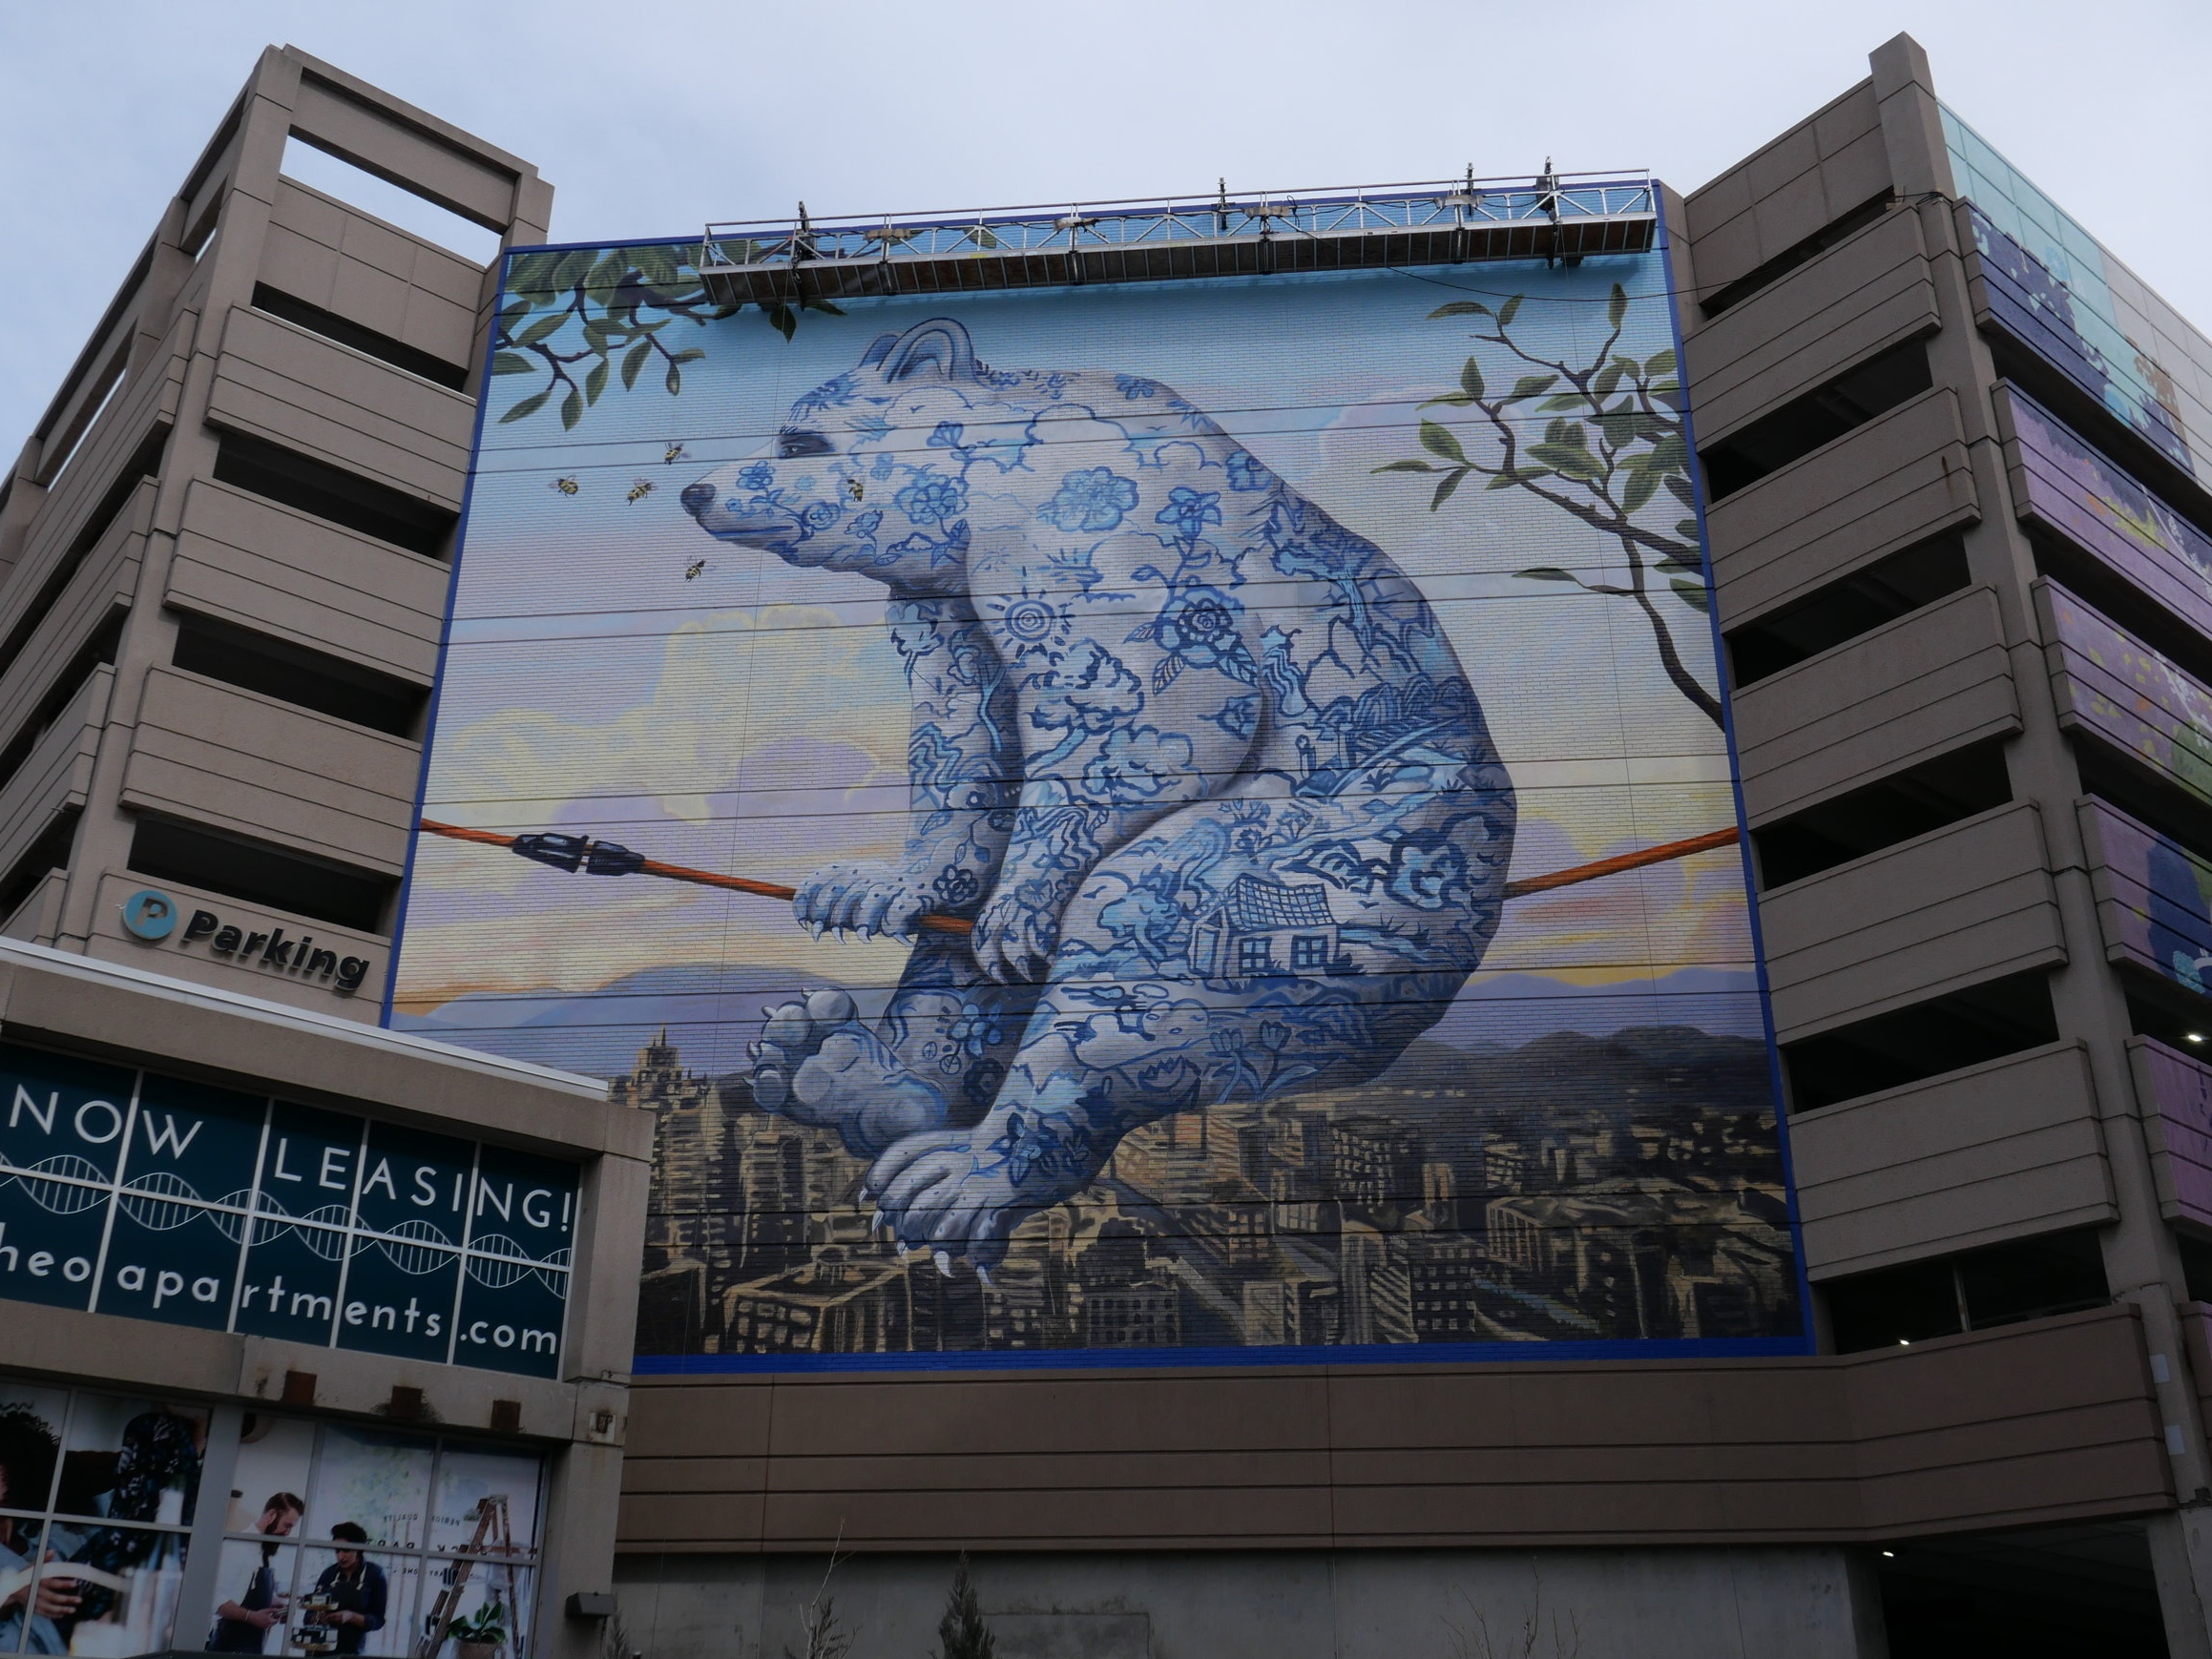 Pictured: Denver painter, Kevin Sloan's original work enlarged by local mural painters for our client Continuum Partners' new development at 9th and Colorado in Denver. This is Sloan's first work of public art and largest work to date.